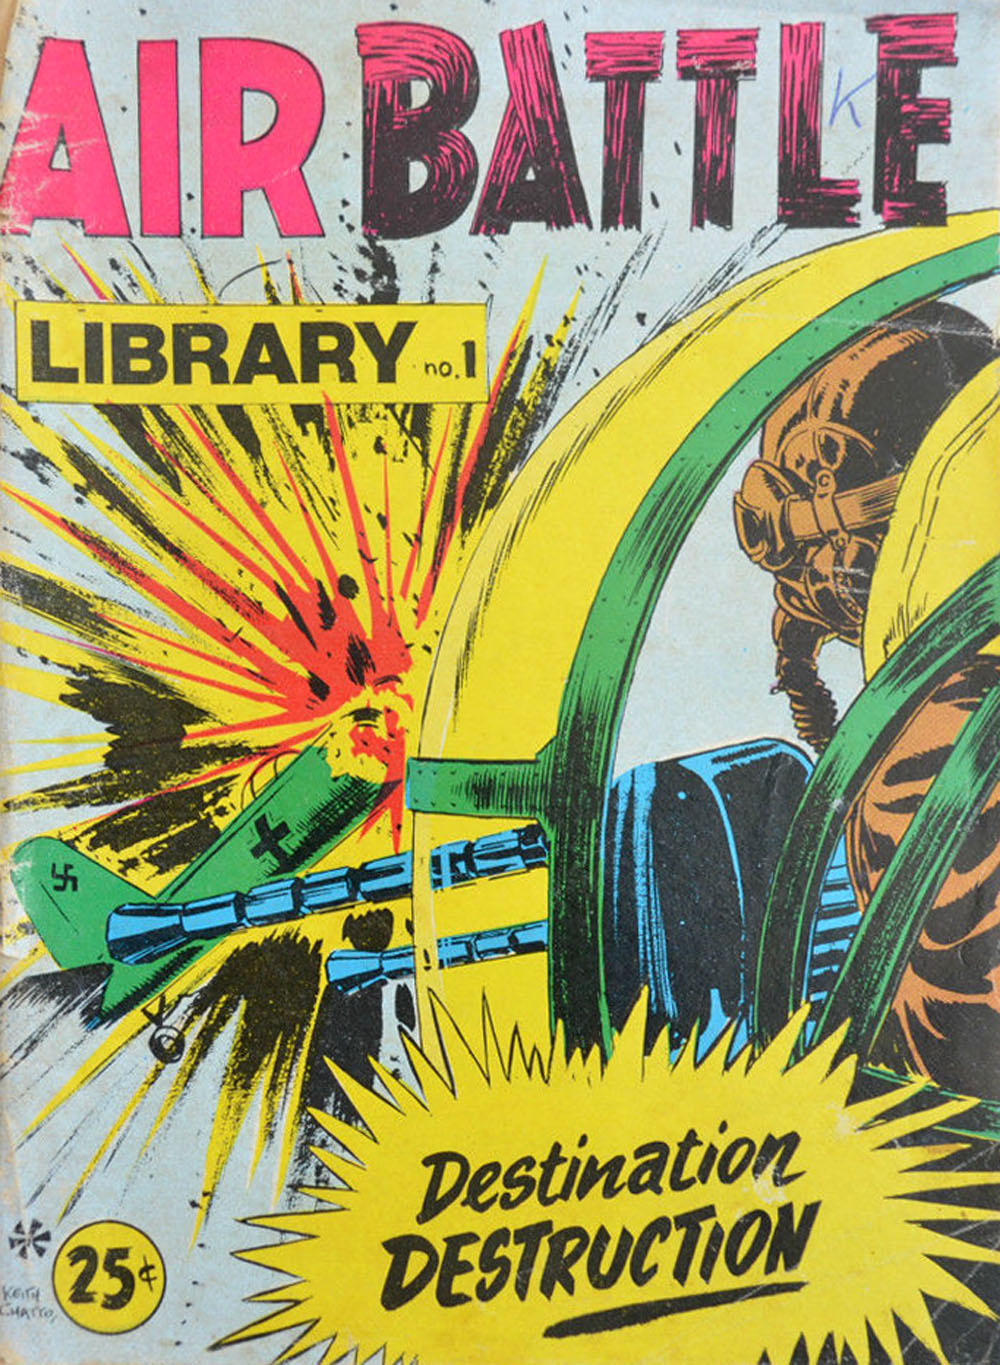 Air Battle Library